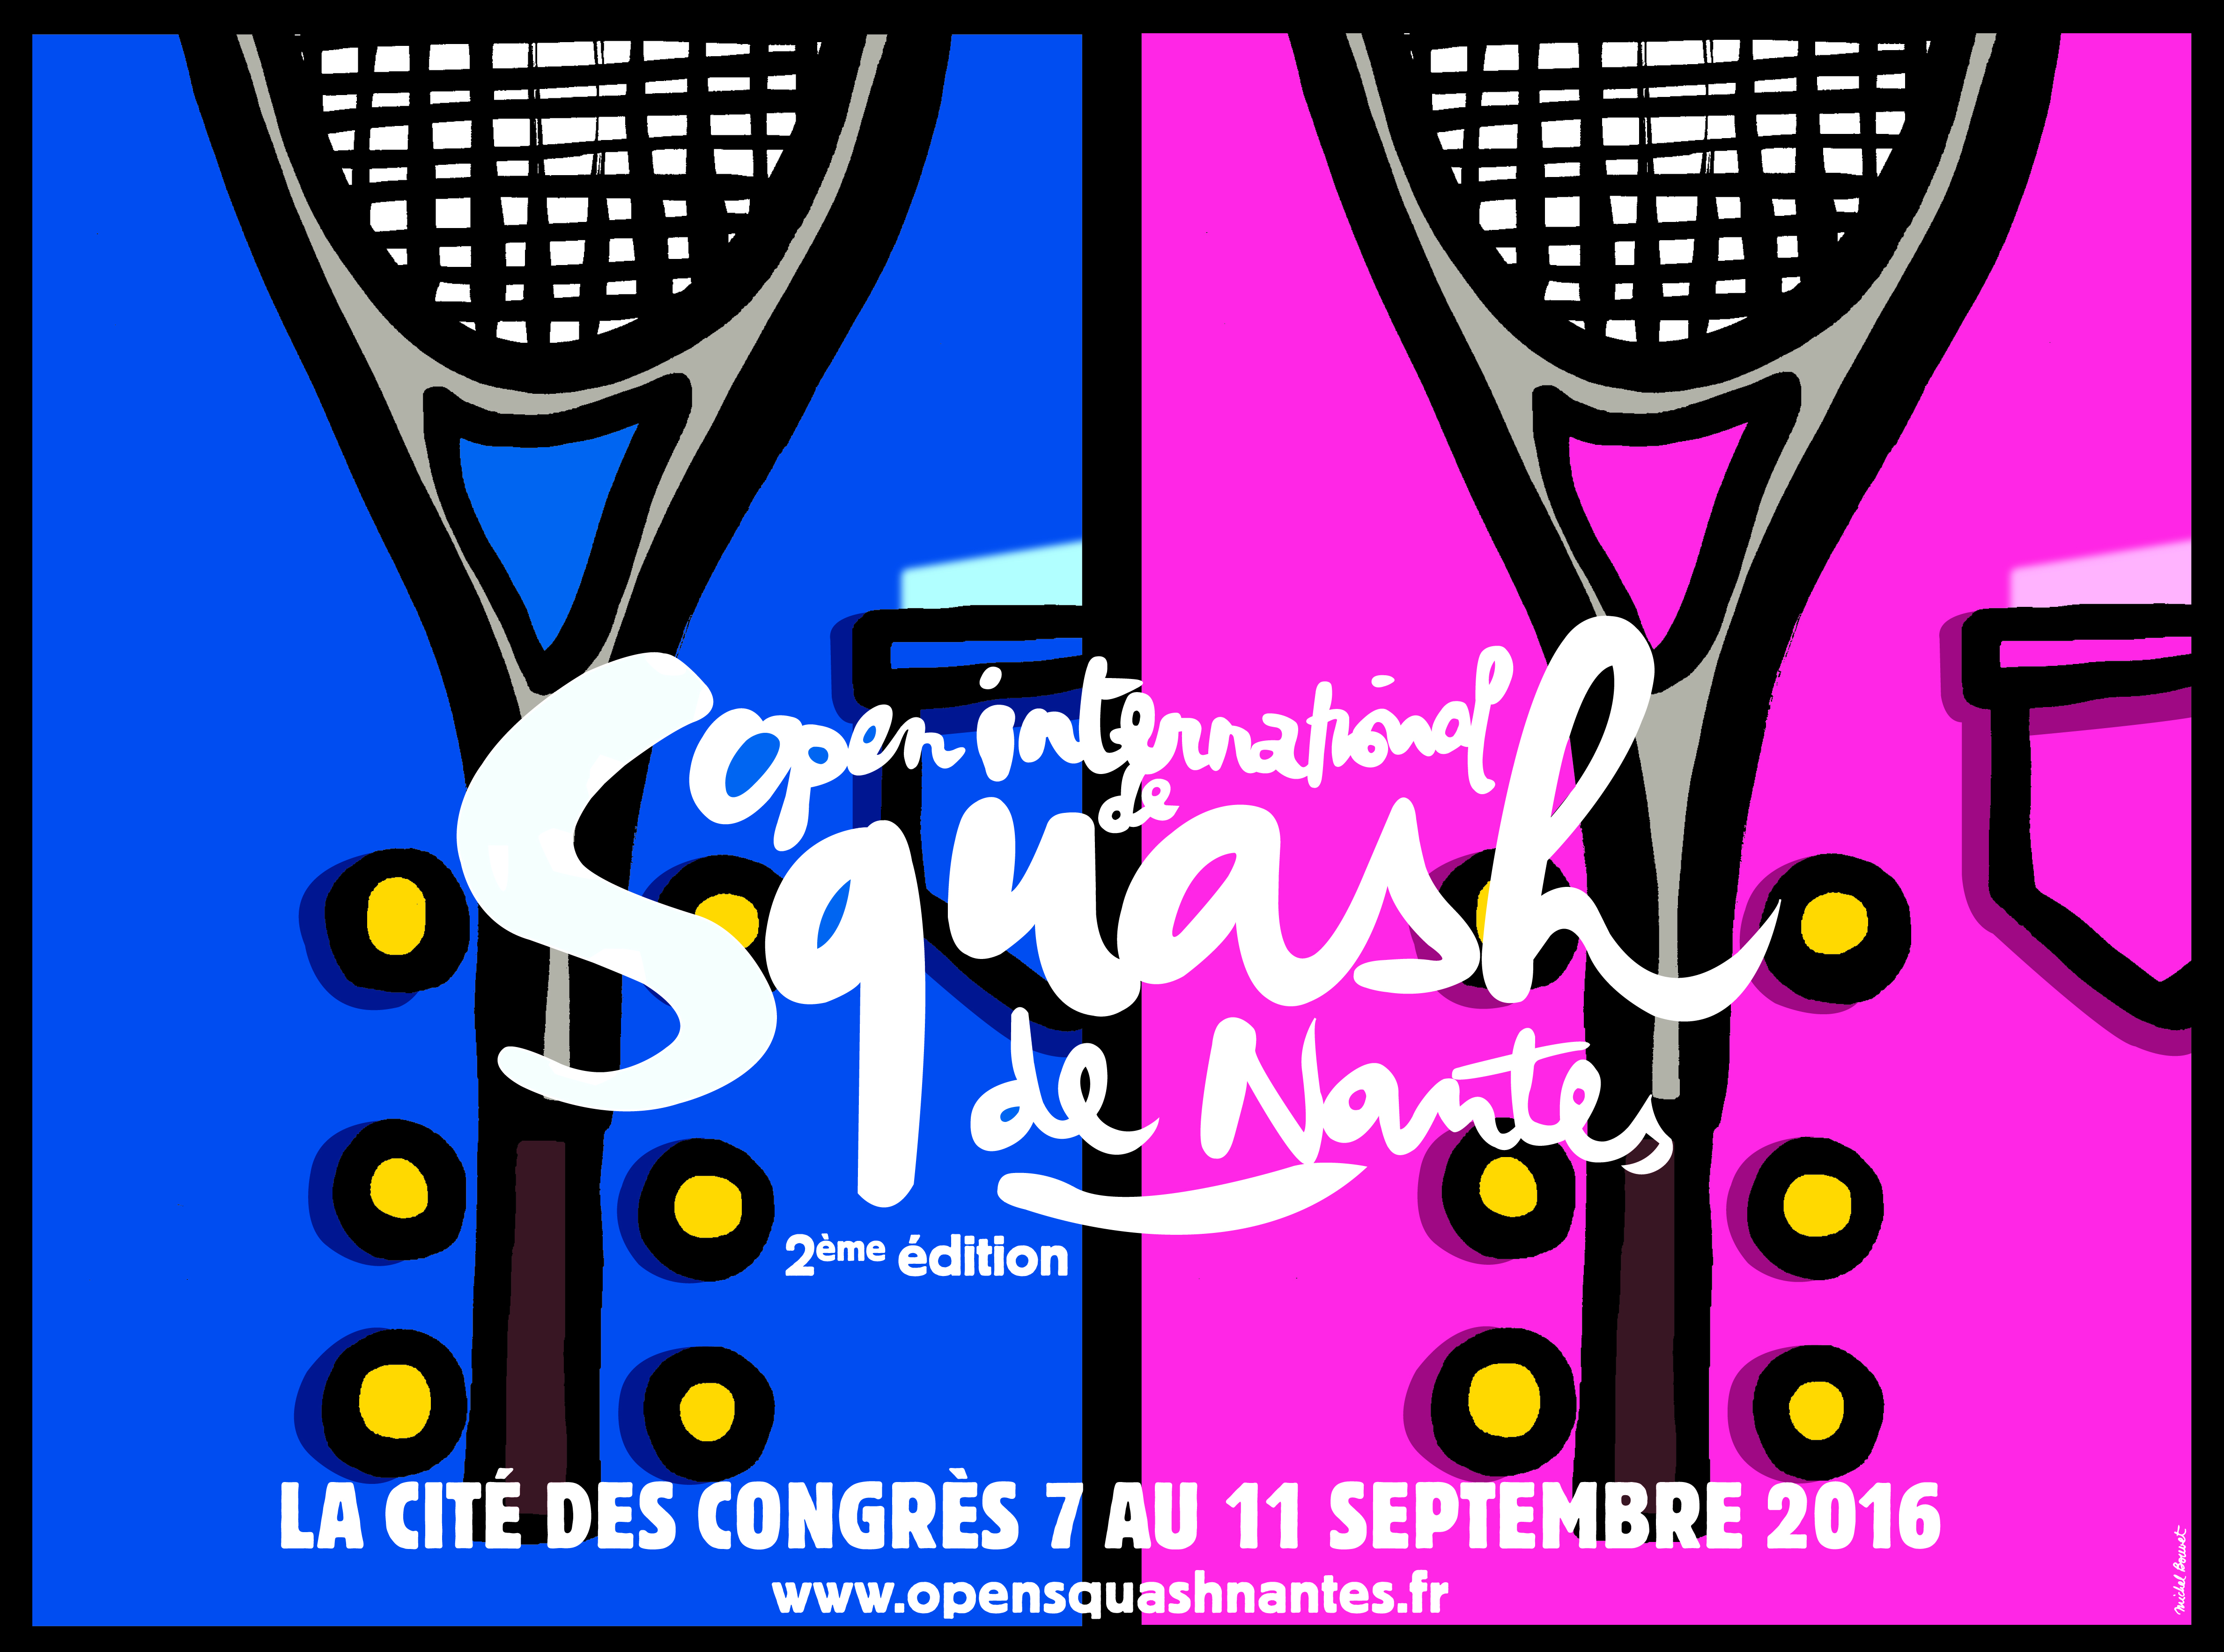 OPEN INTERNATIONAL DE NANTES